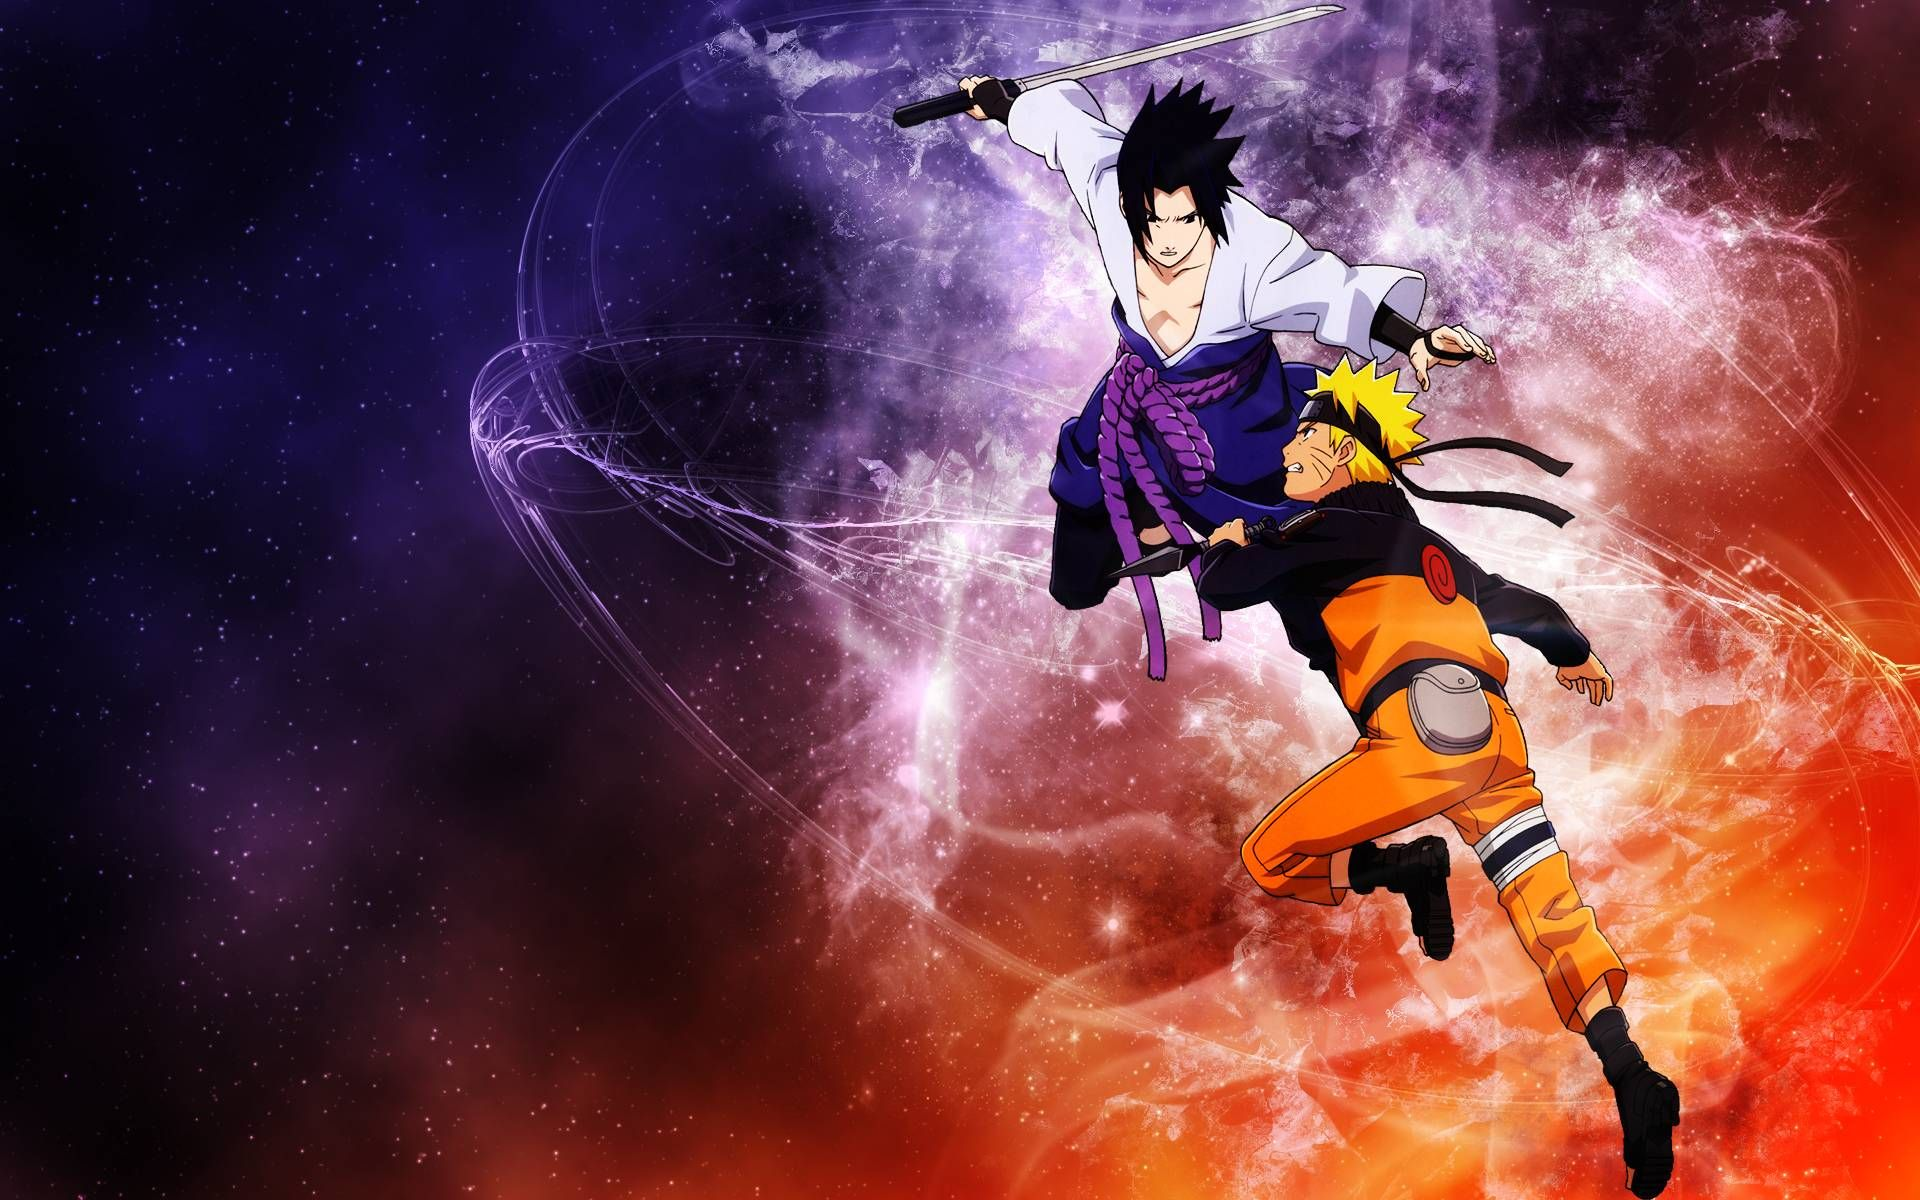 Naruto Hd Images For Free 1920 1200 Naruto Hd Wallpapers Download